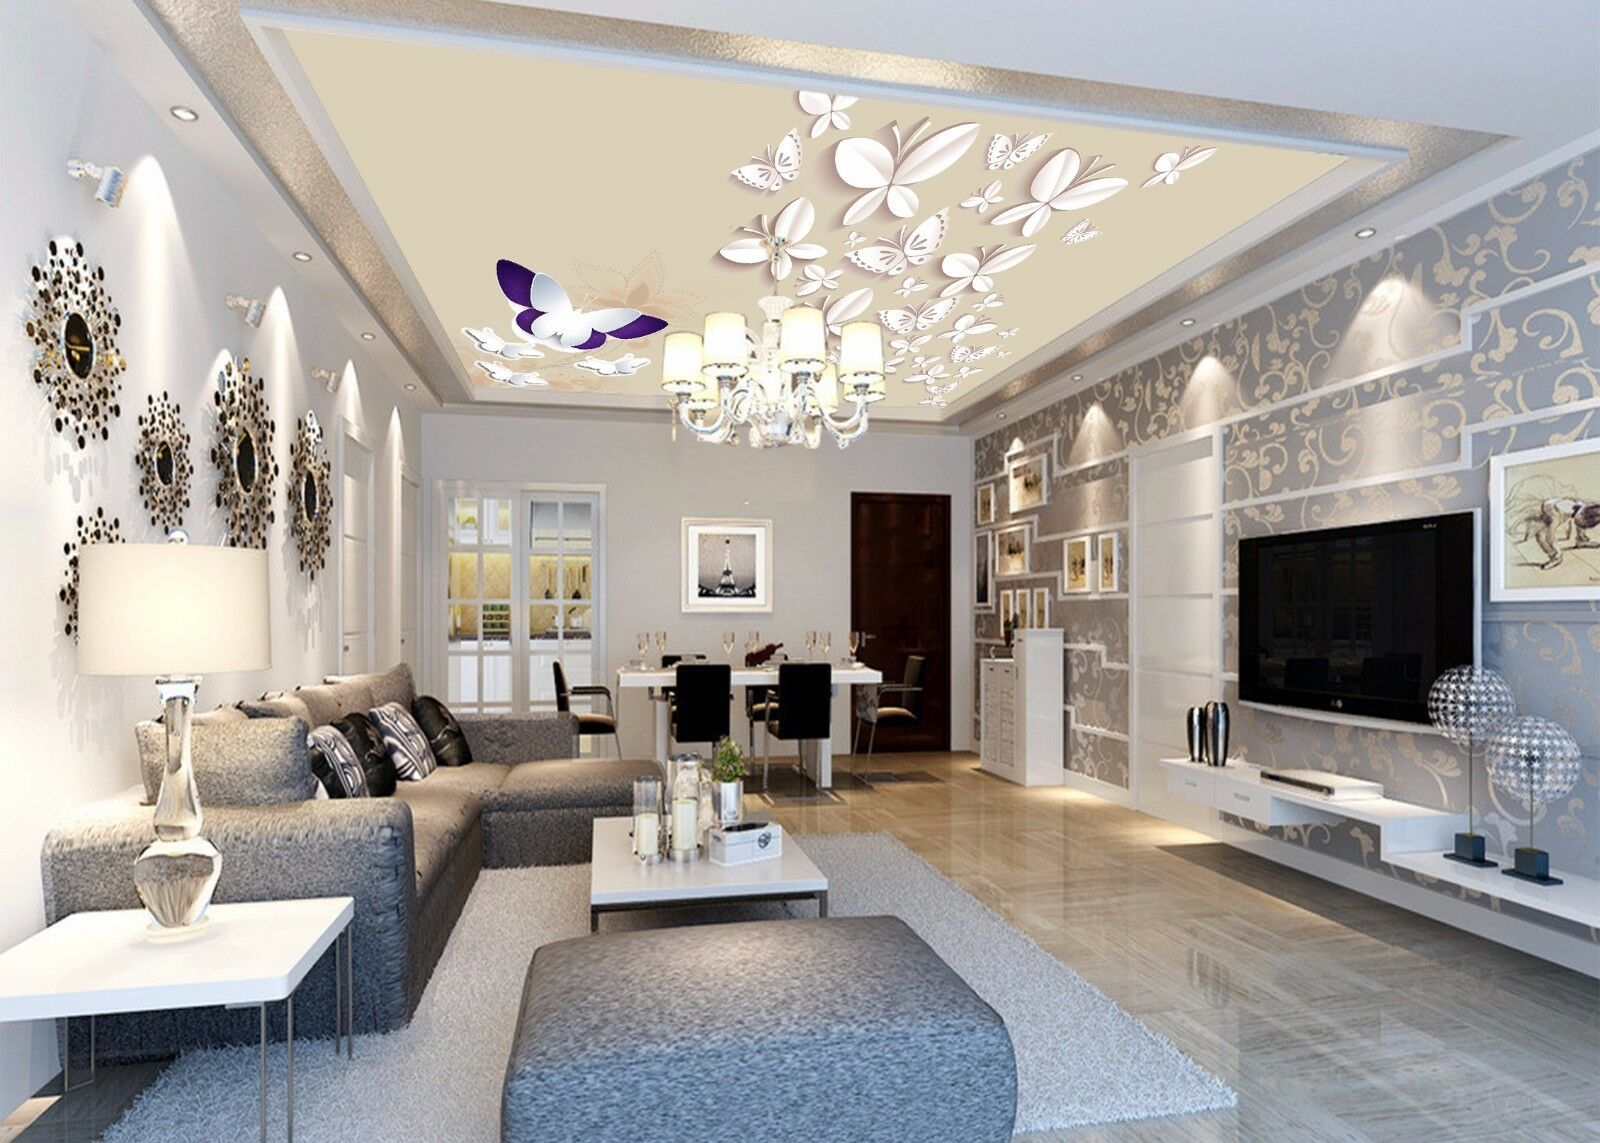 3D White Butterfly 8 Ceiling WallPaper Murals Wall Print Decal Deco AJ WALLPAPER